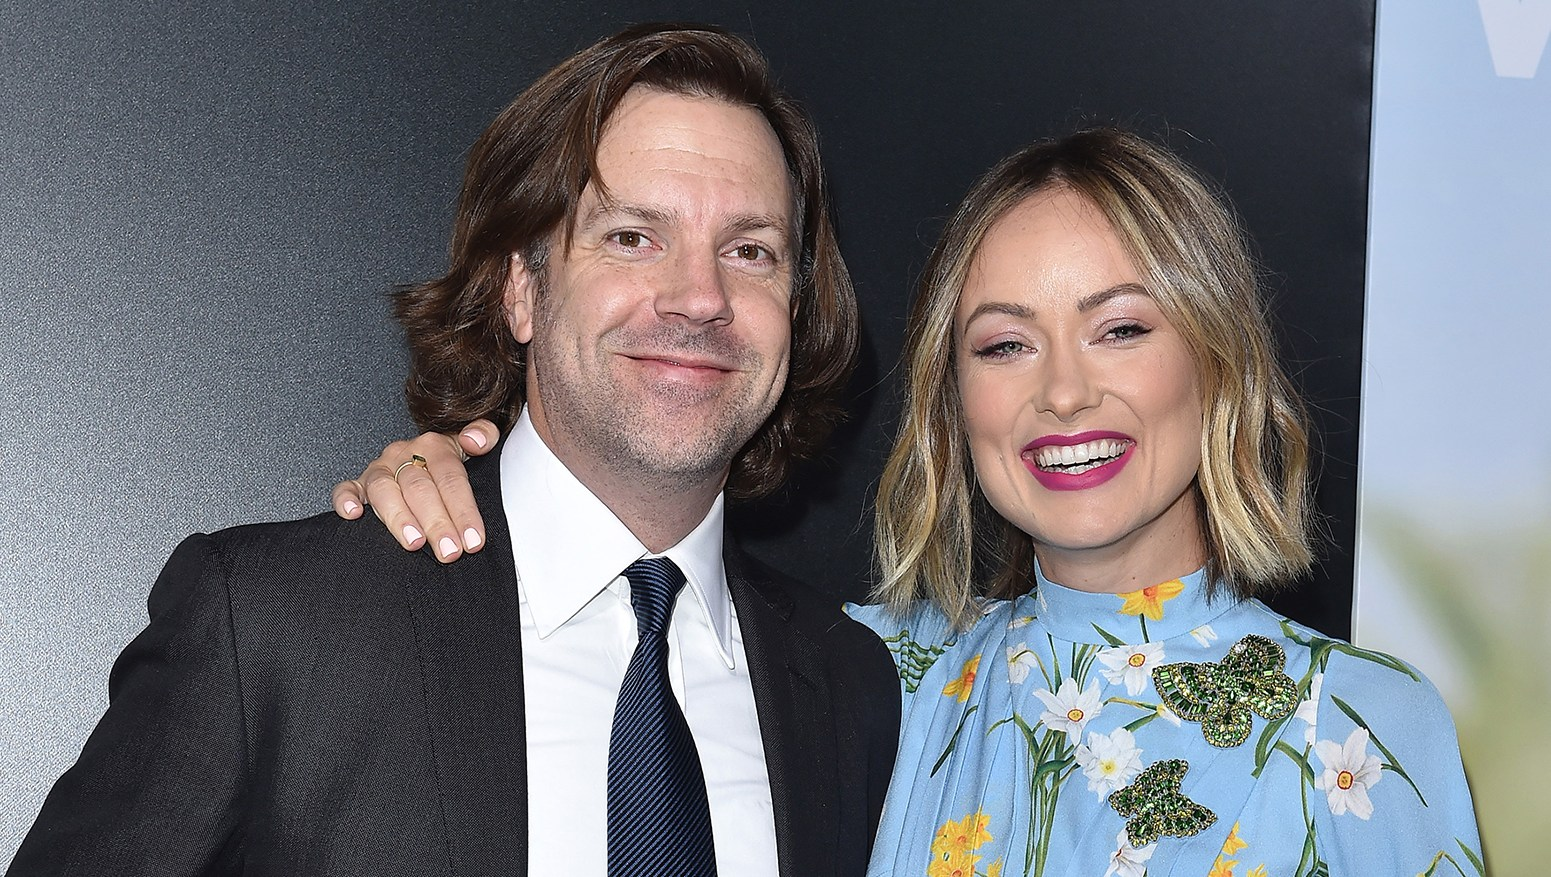 Olivia Wilde: My Advice for Balancing Work and Mom Life